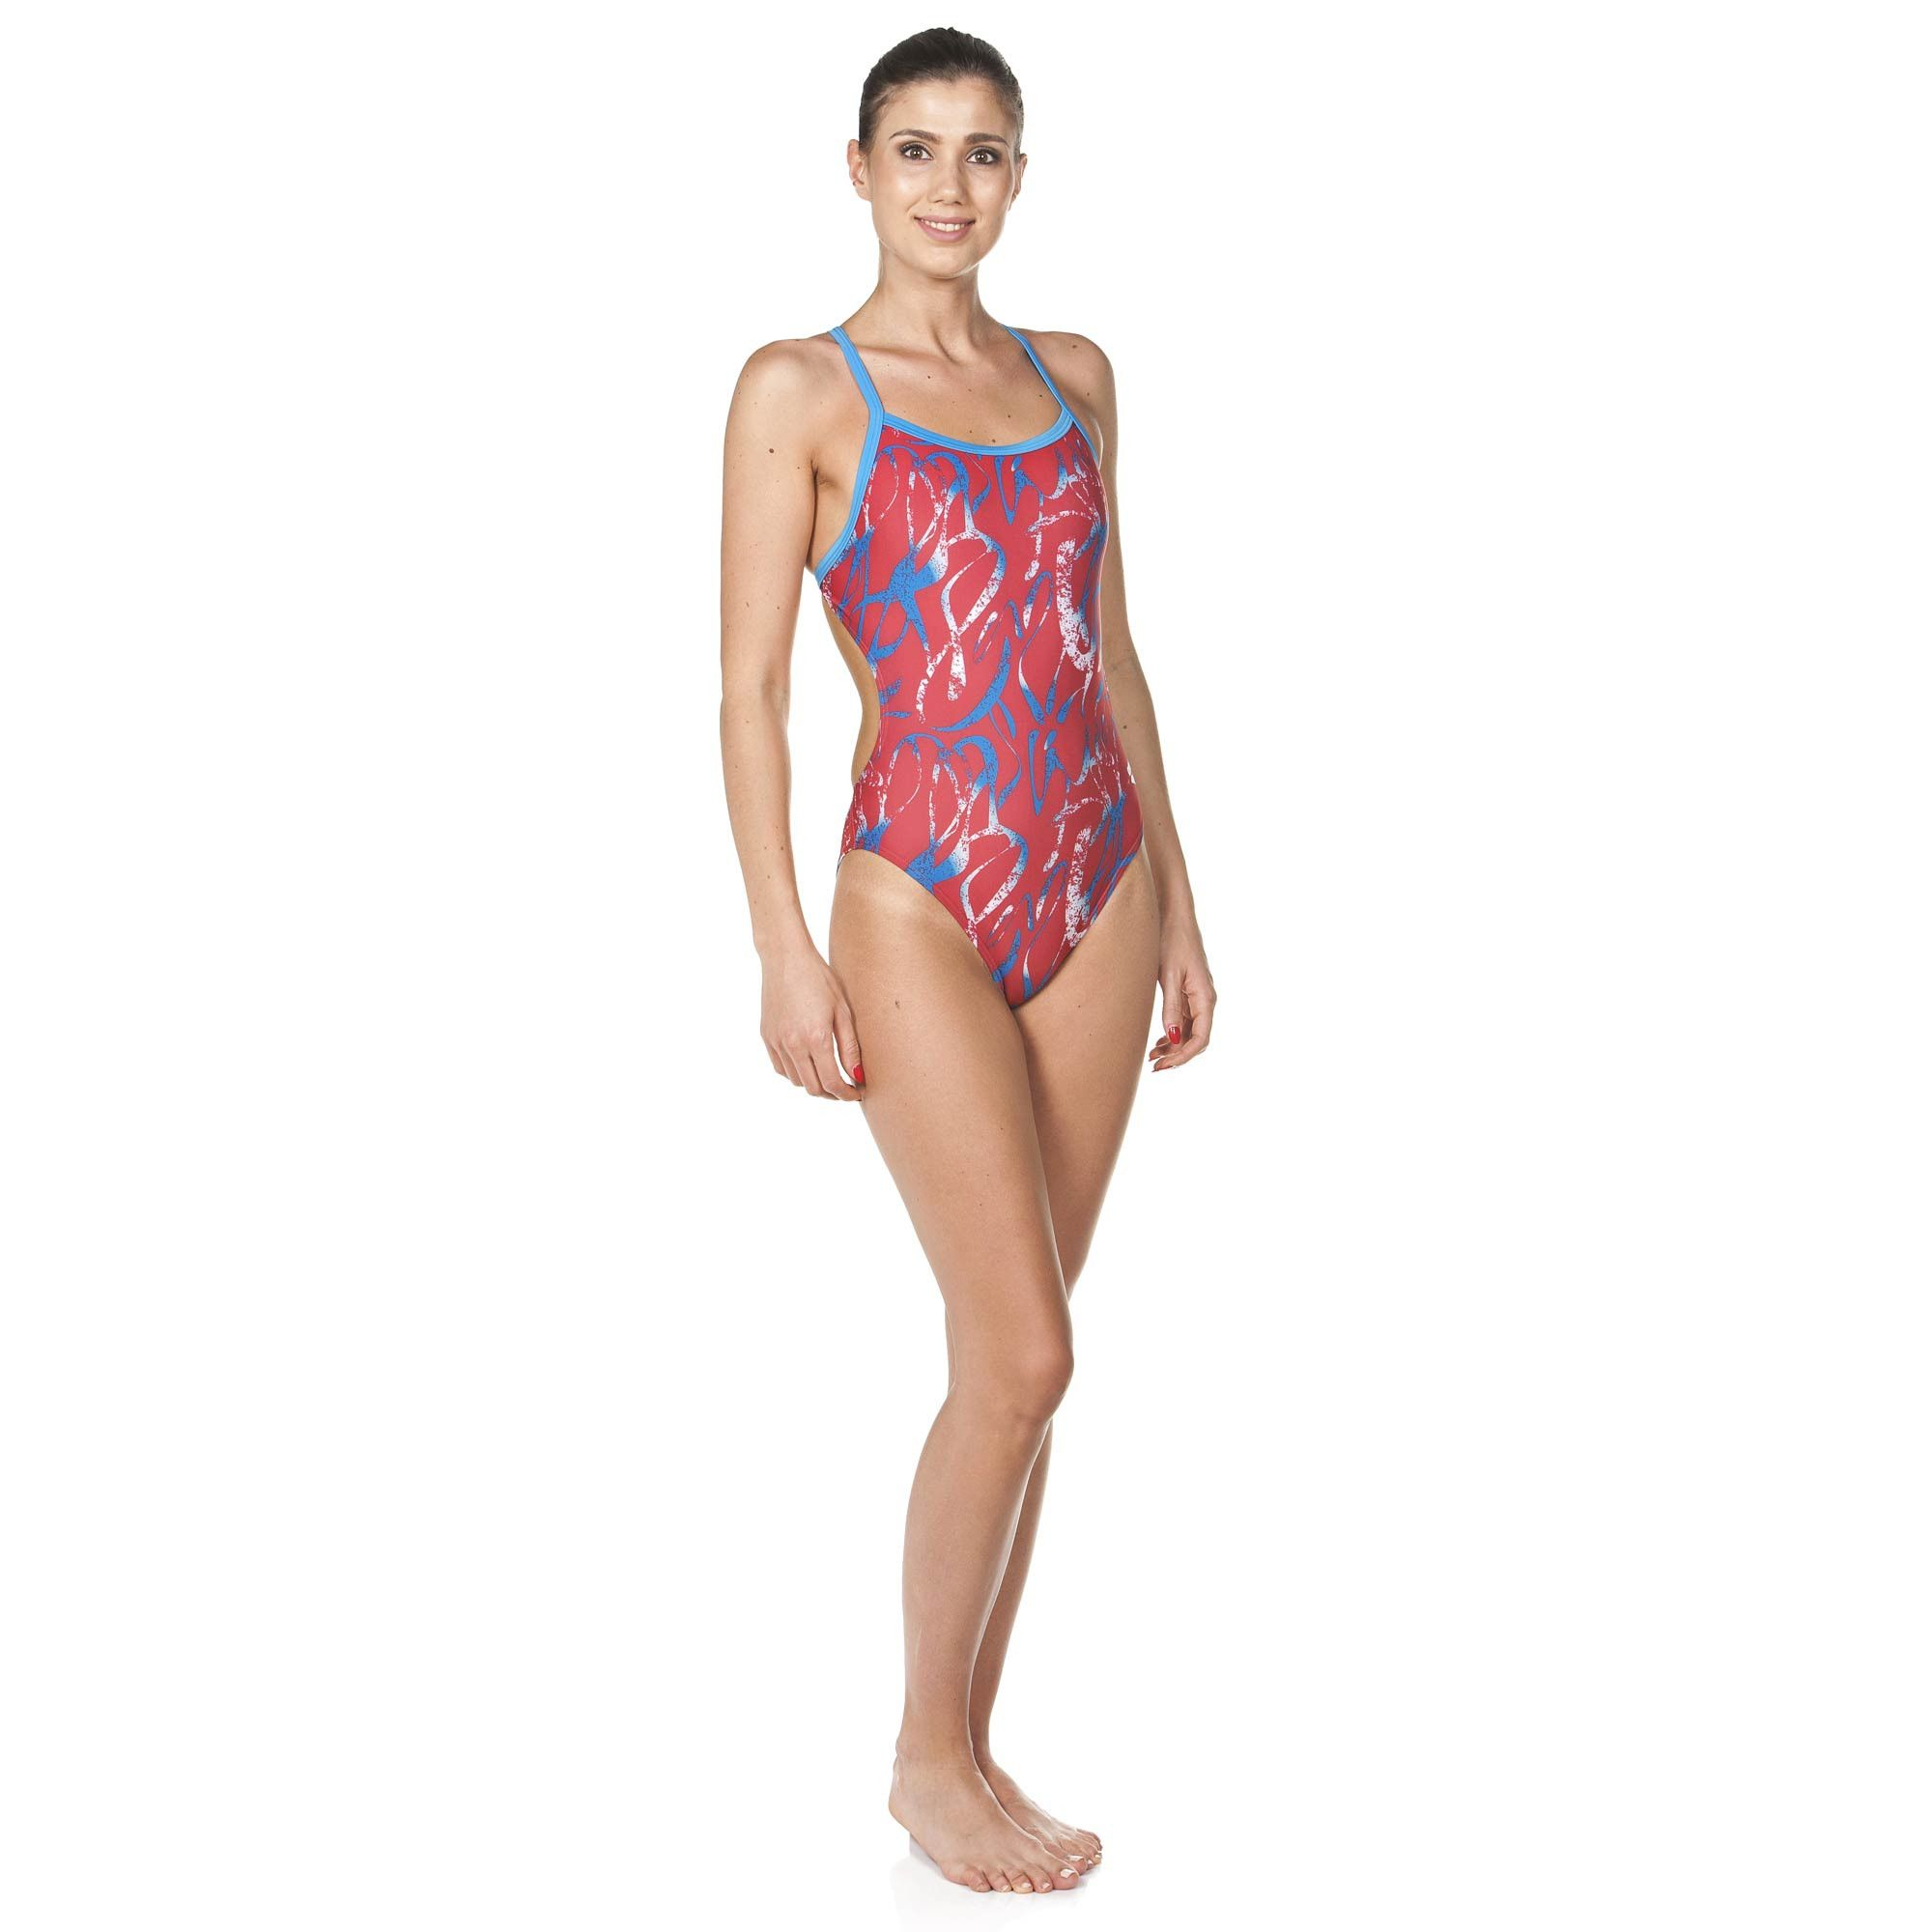 c8ee5a68cd3 Women's Blaze One Piece Swimsuit (Lining) | arena Training Swimsuits ...